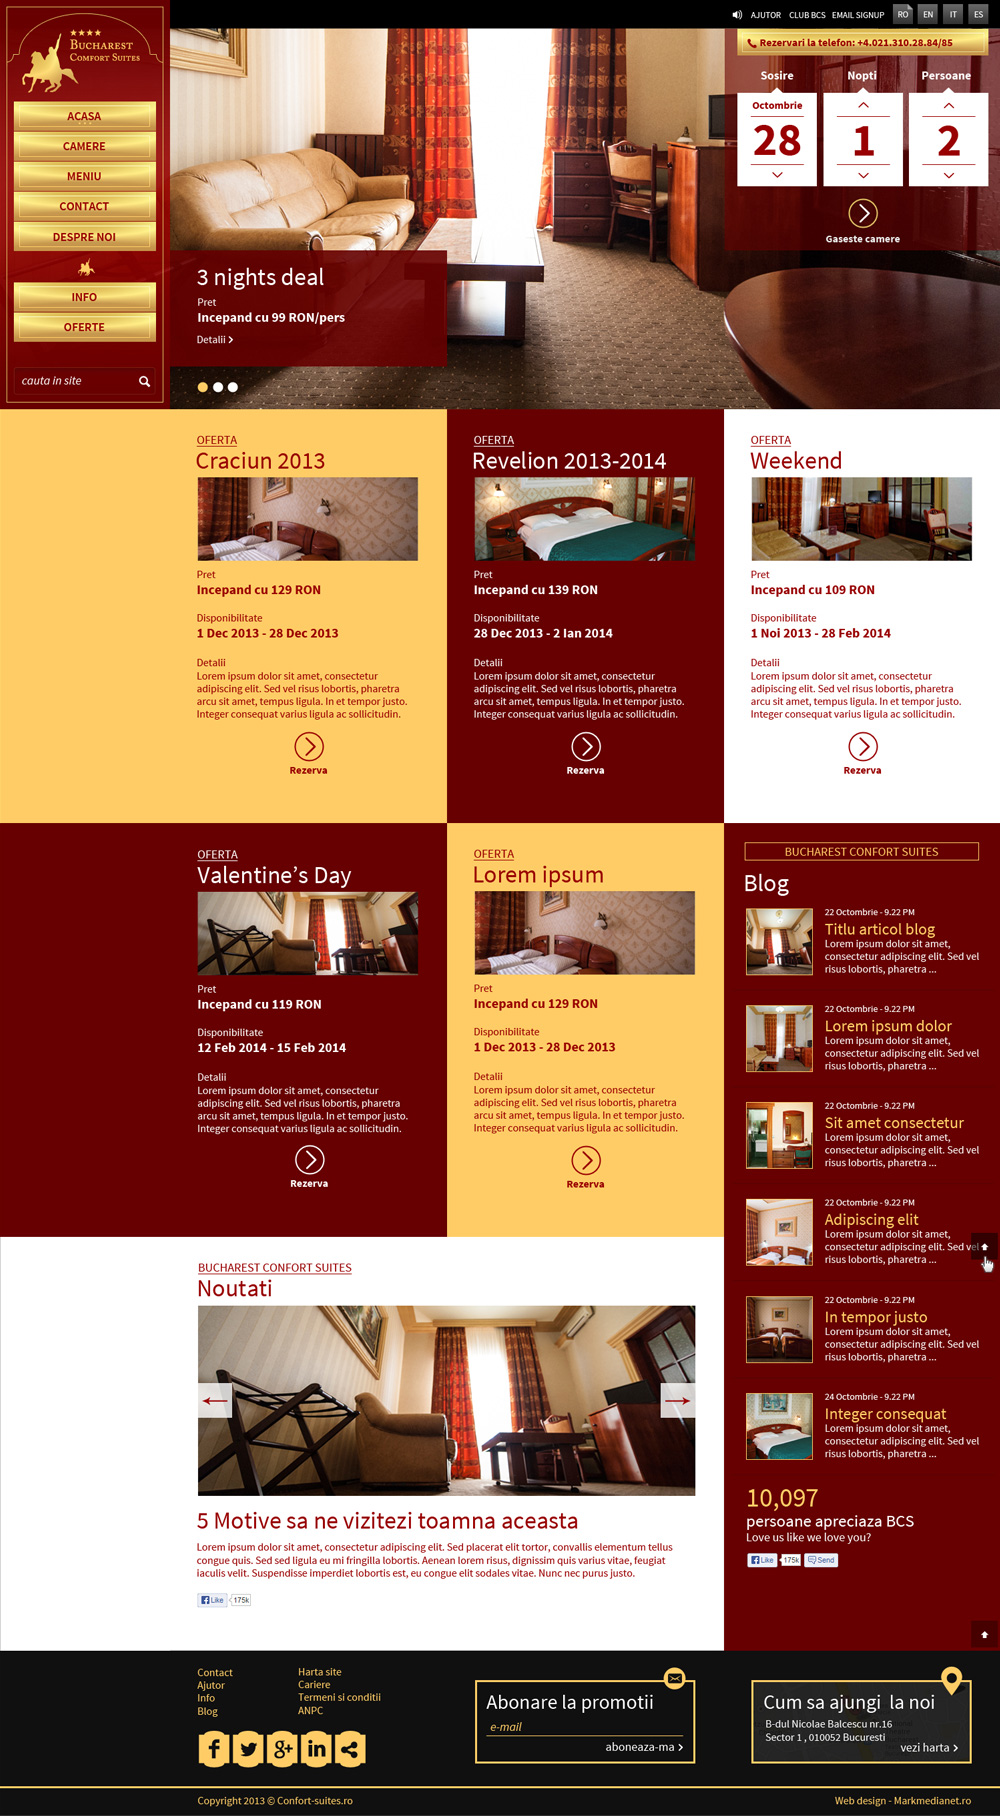 Comfort Suites - web design si implementare